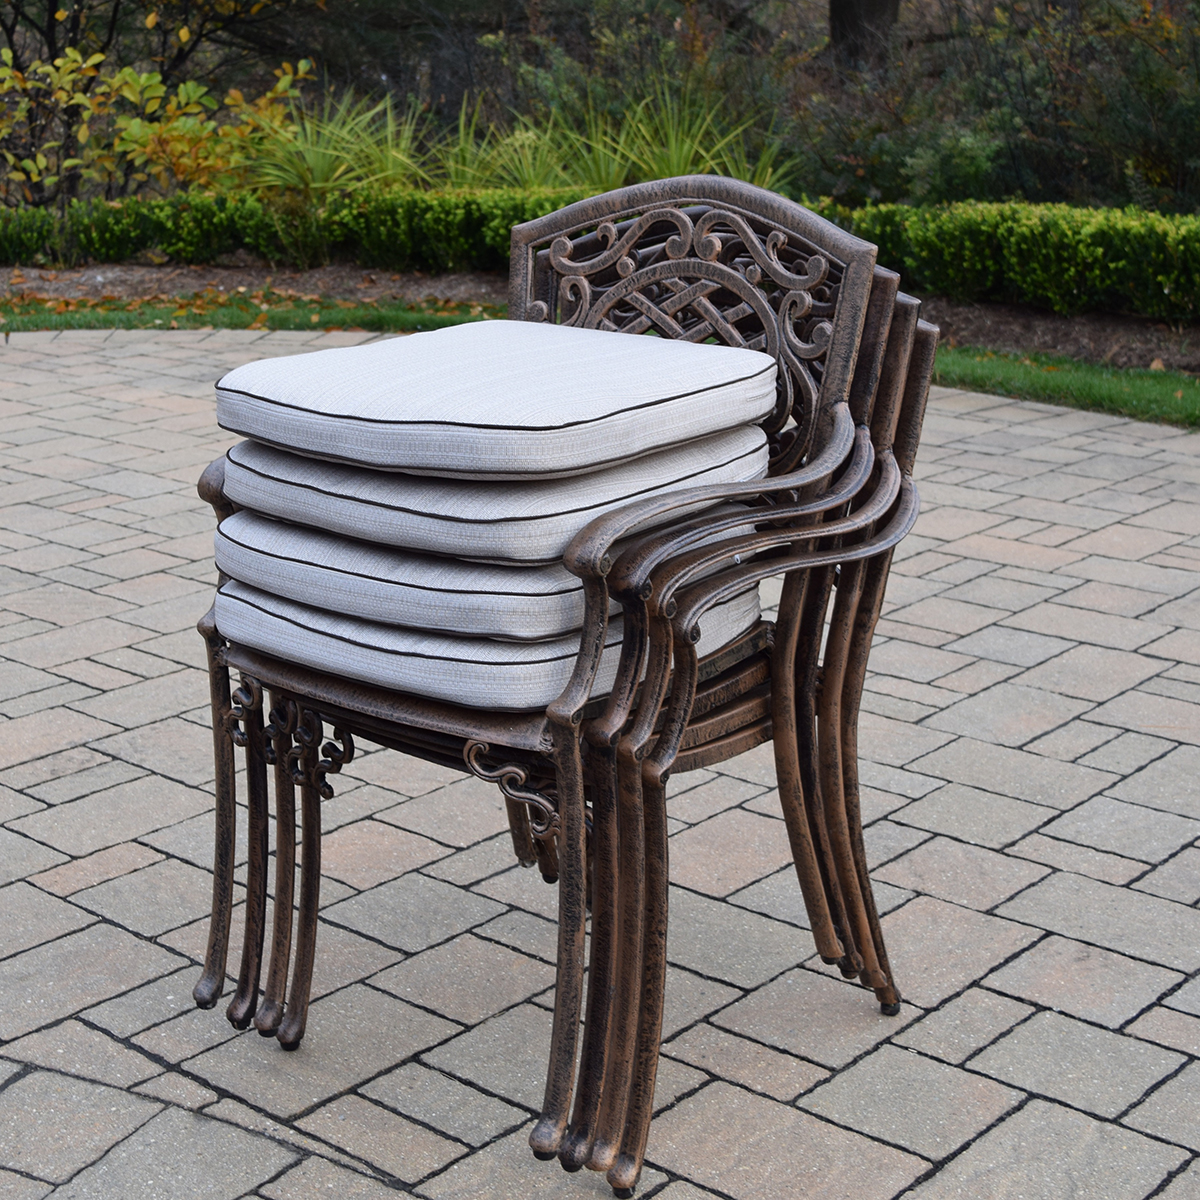 stackable metal patio chairs wedding chair covers pembrokeshire oakland living mississippi 5 piece cast aluminum